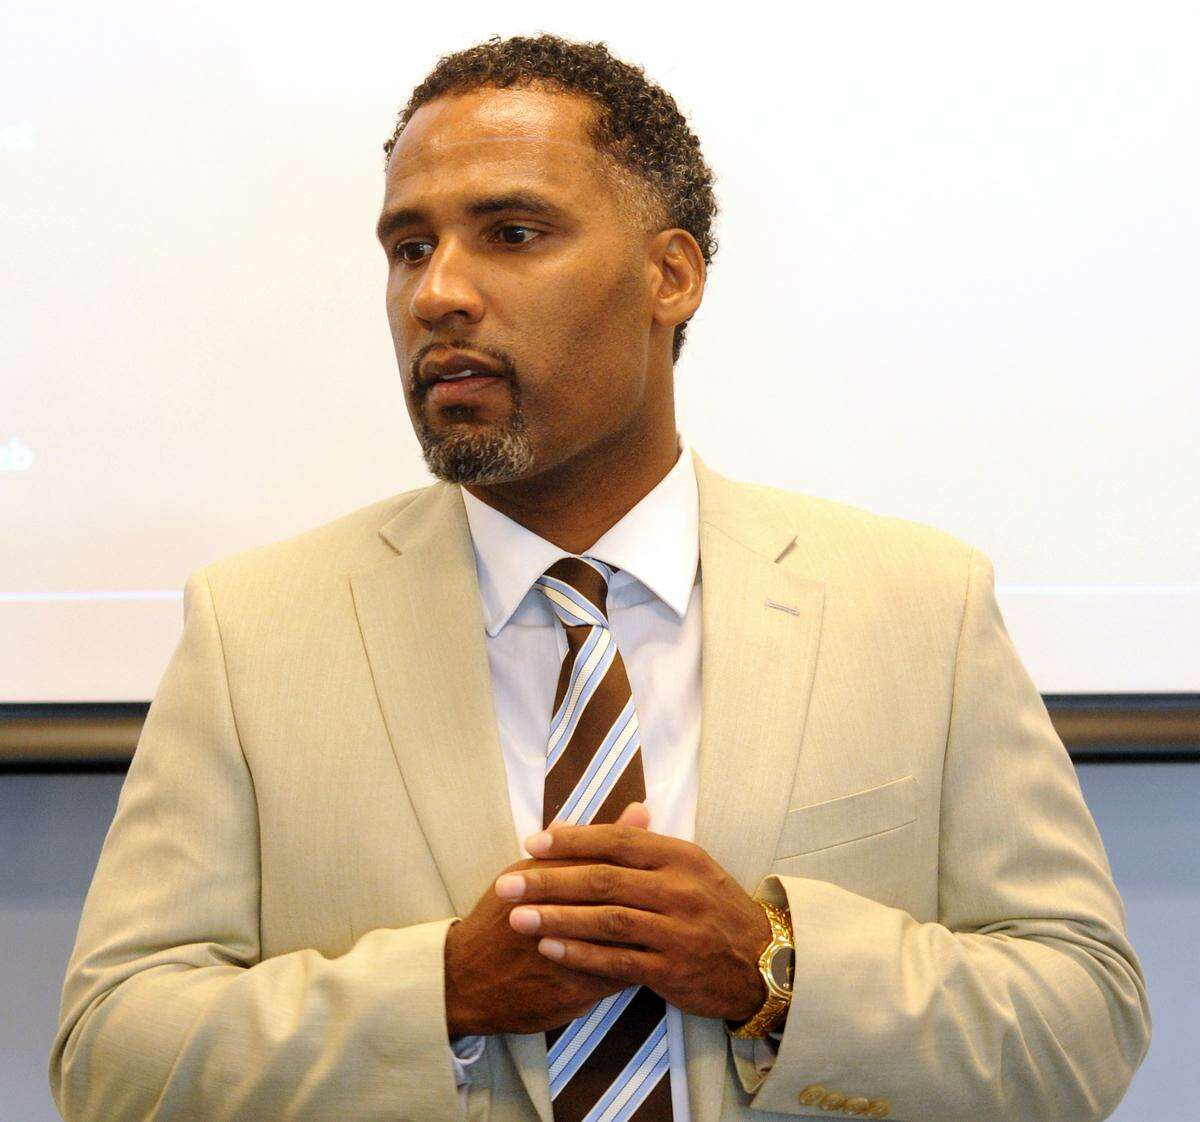 Bridgeport City Council voted Monday, May 1, 2017 to approve the settlement paying $65,000 to settle a federal discrimination lawsuit filed by Sgt. Lonnie Blackwell. Blackwell was demoted last year in connection with a fake racist letter that was disseminated around the police department.